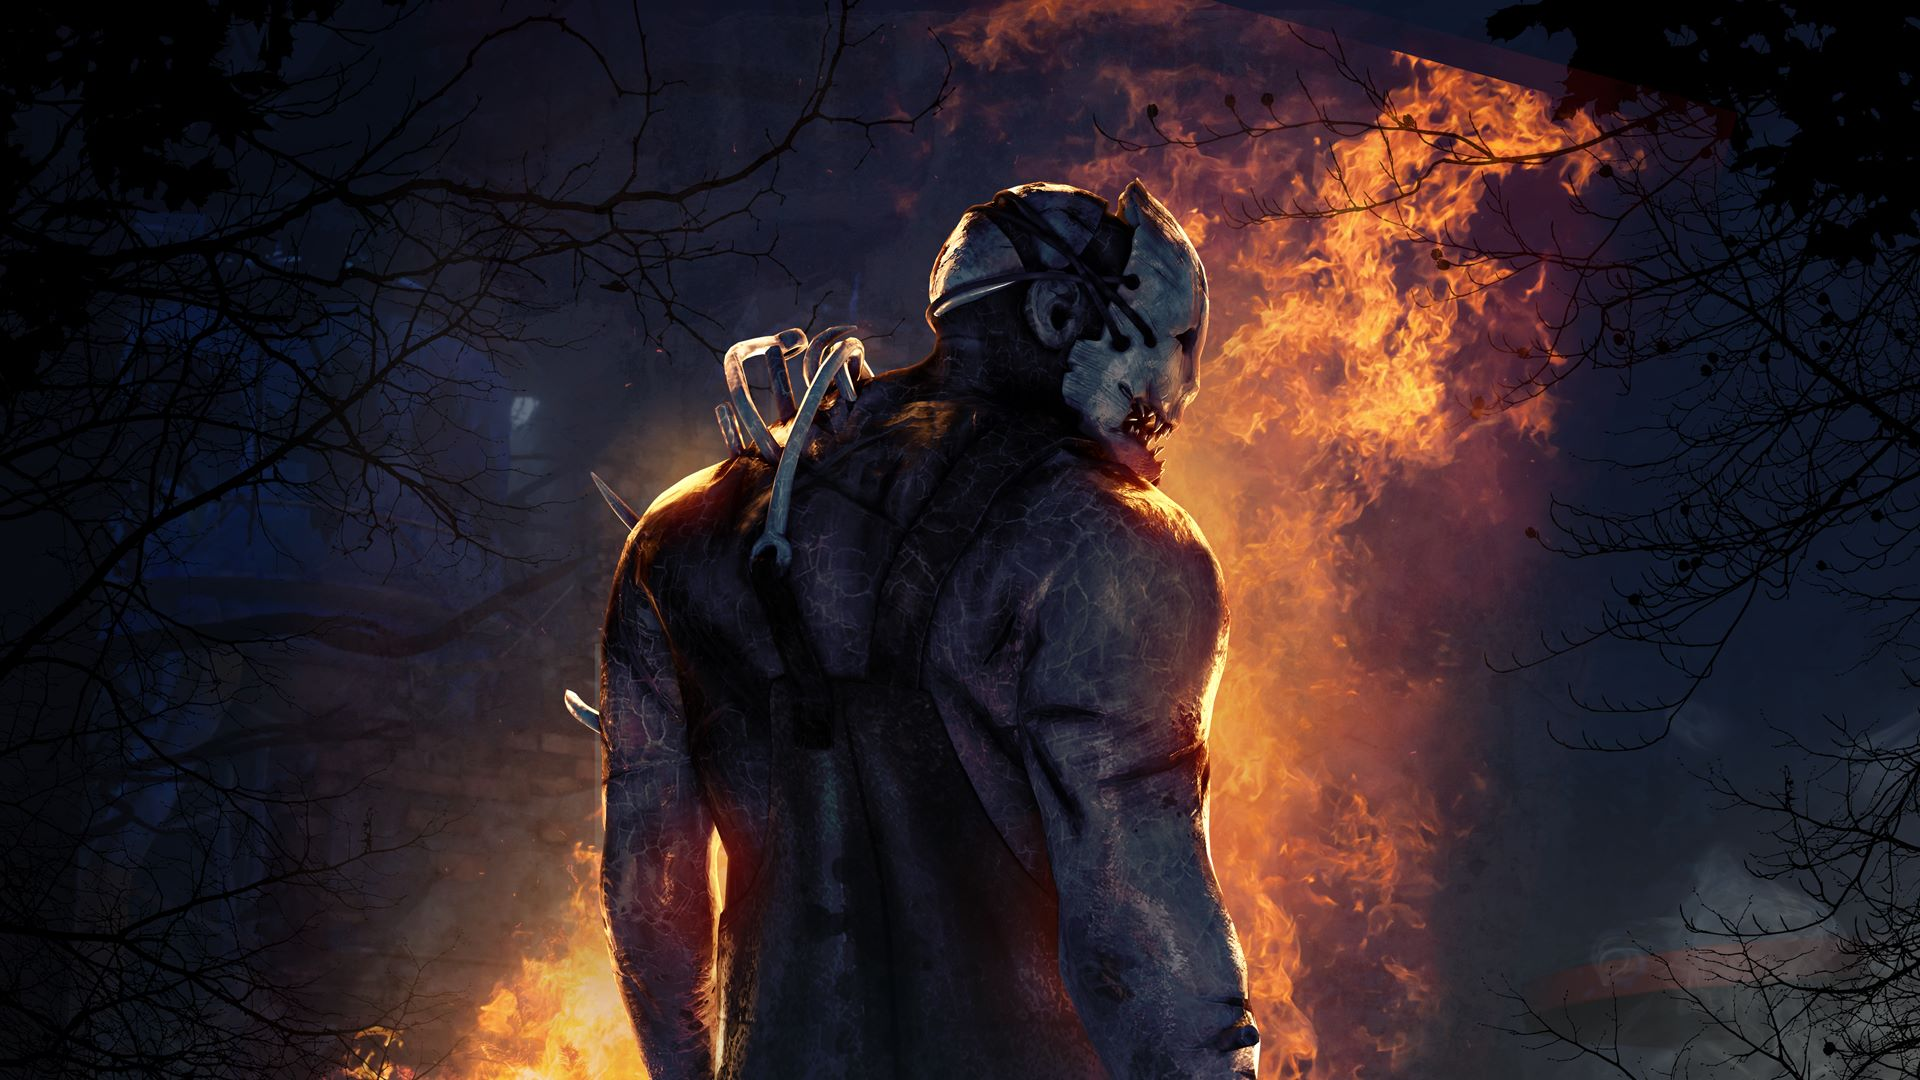 cancelled matchmaking dead by daylight dating website for tattoo lovers